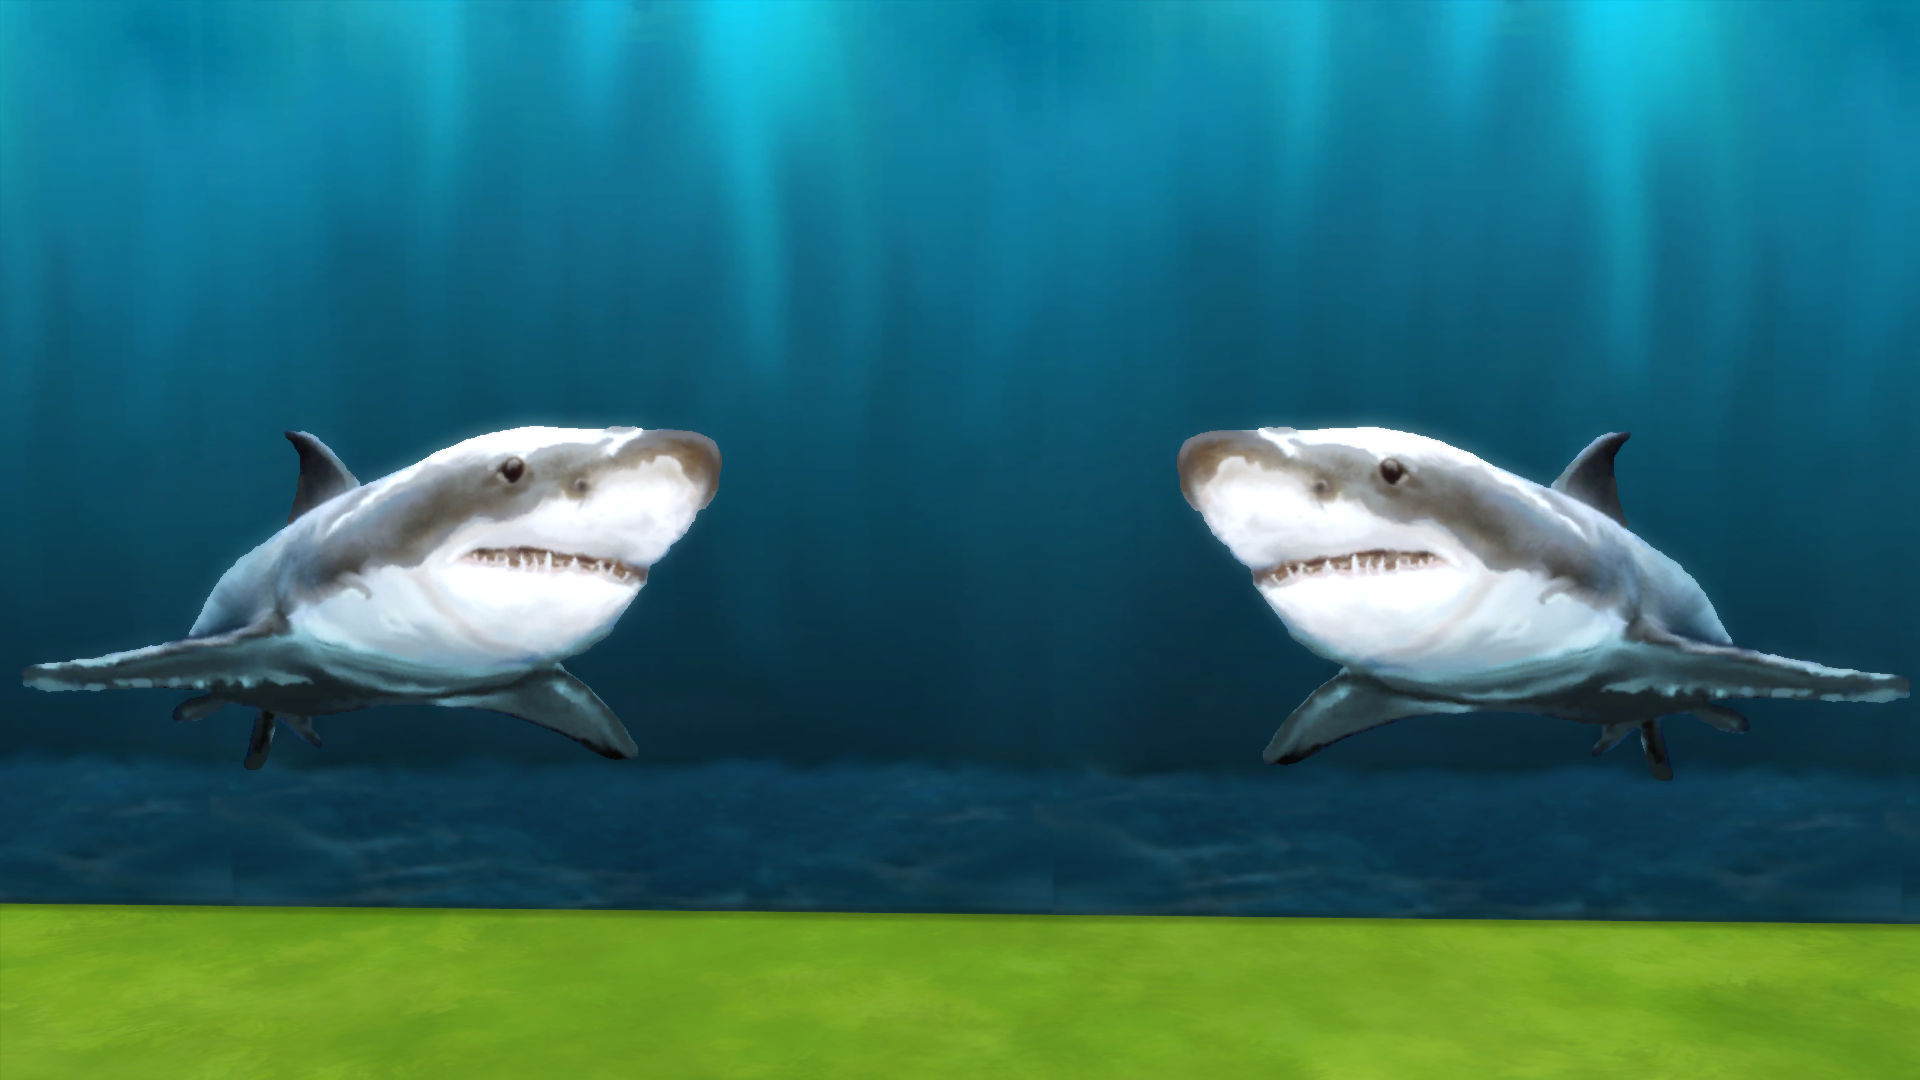 Mod the sims yipes sharks advertisement amipublicfo Choice Image